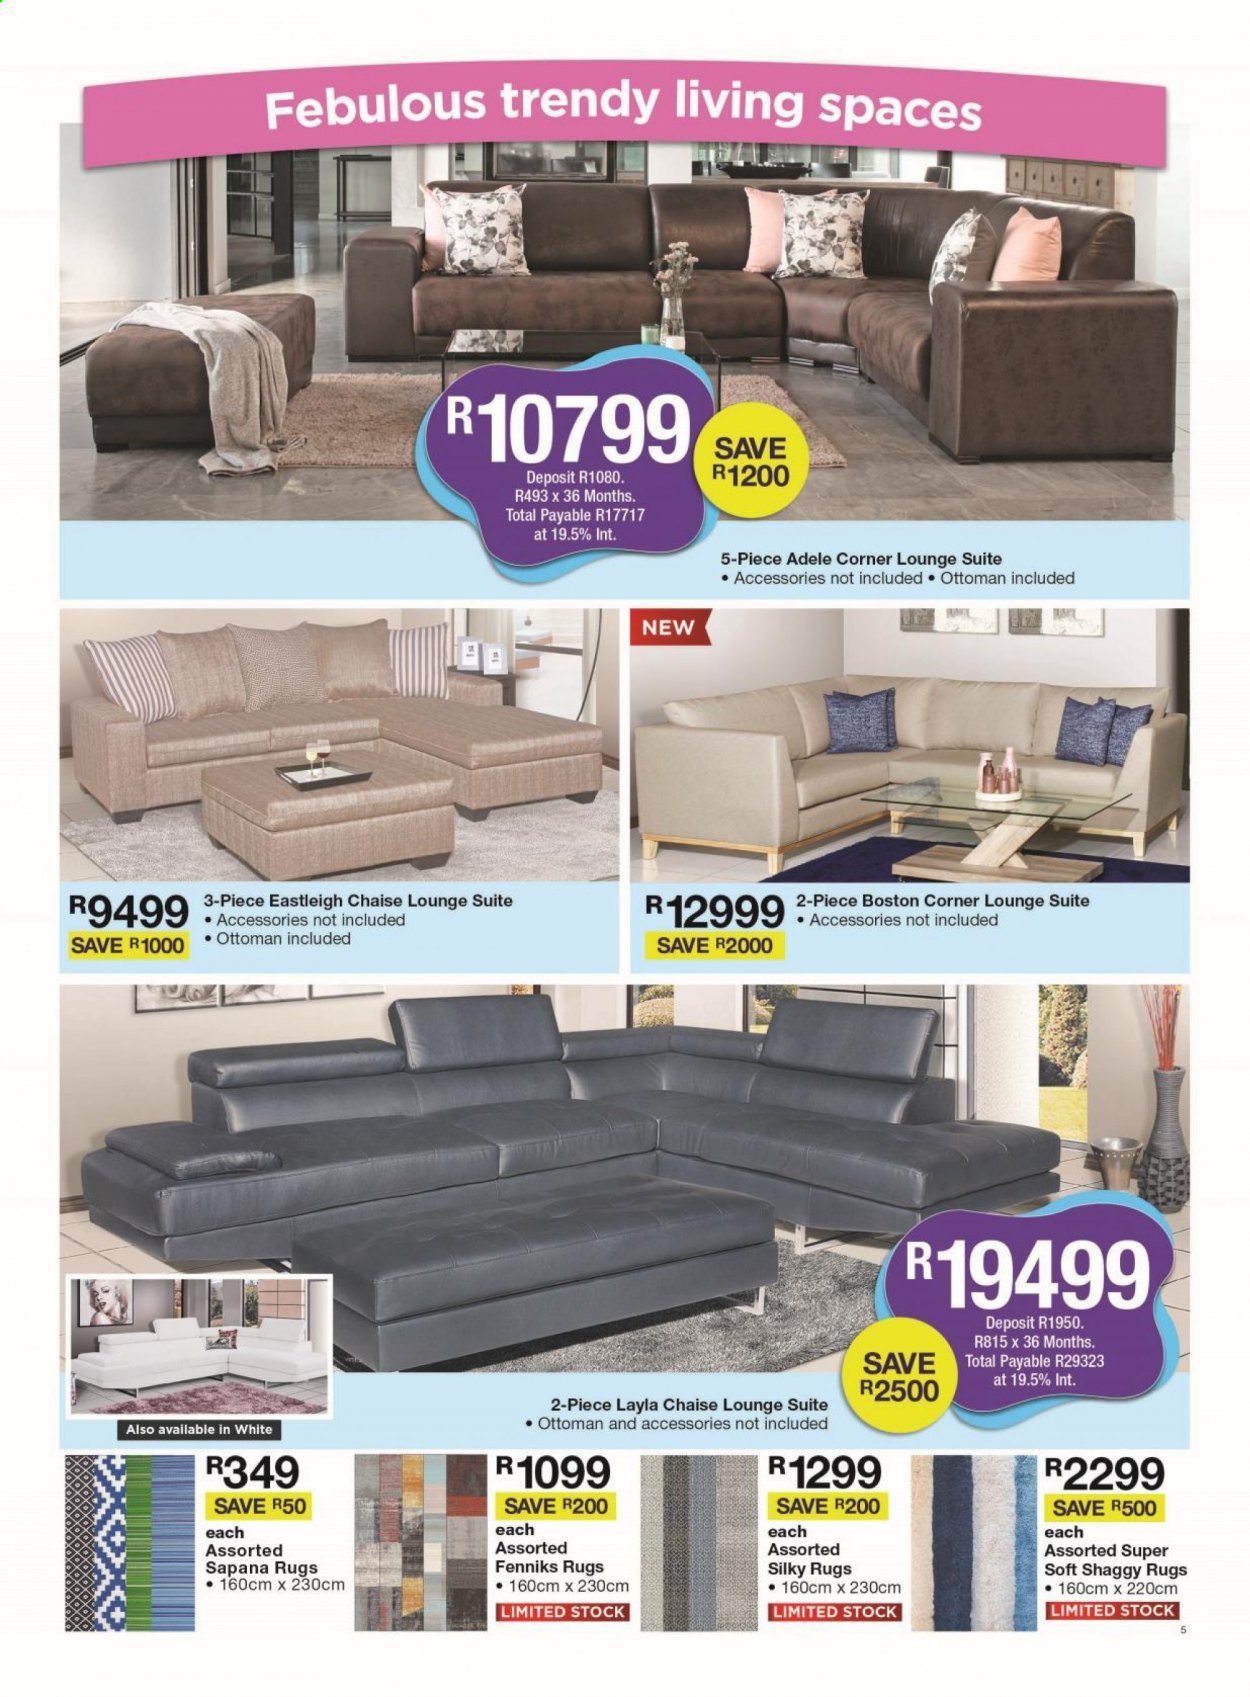 House & Home catalogue  - 02.22.2021 - 03.02.2021. Page 5.